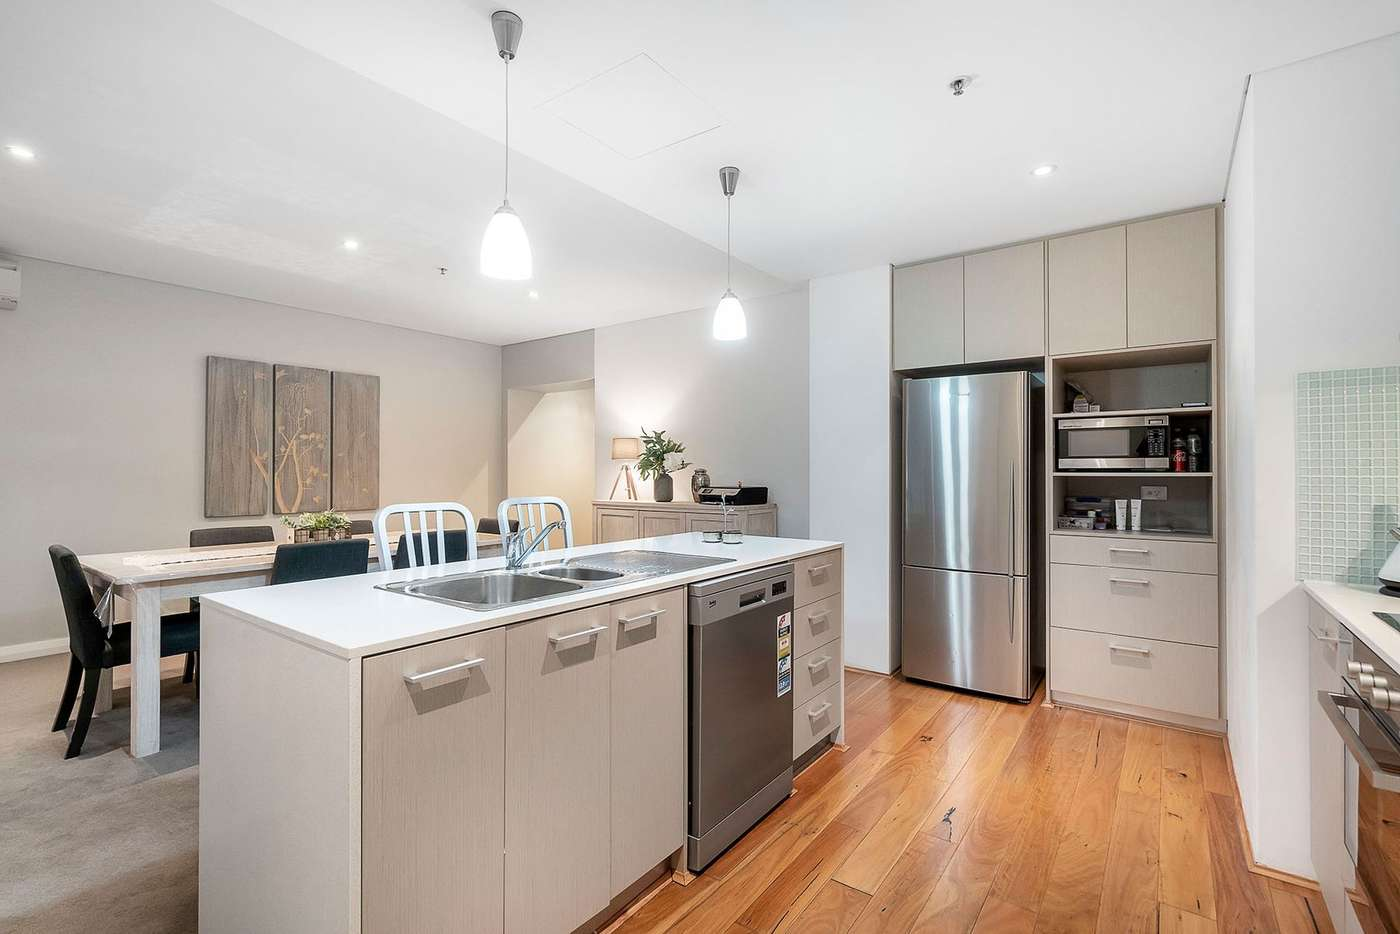 Fifth view of Homely apartment listing, 16/580 Hay Street, Perth WA 6000